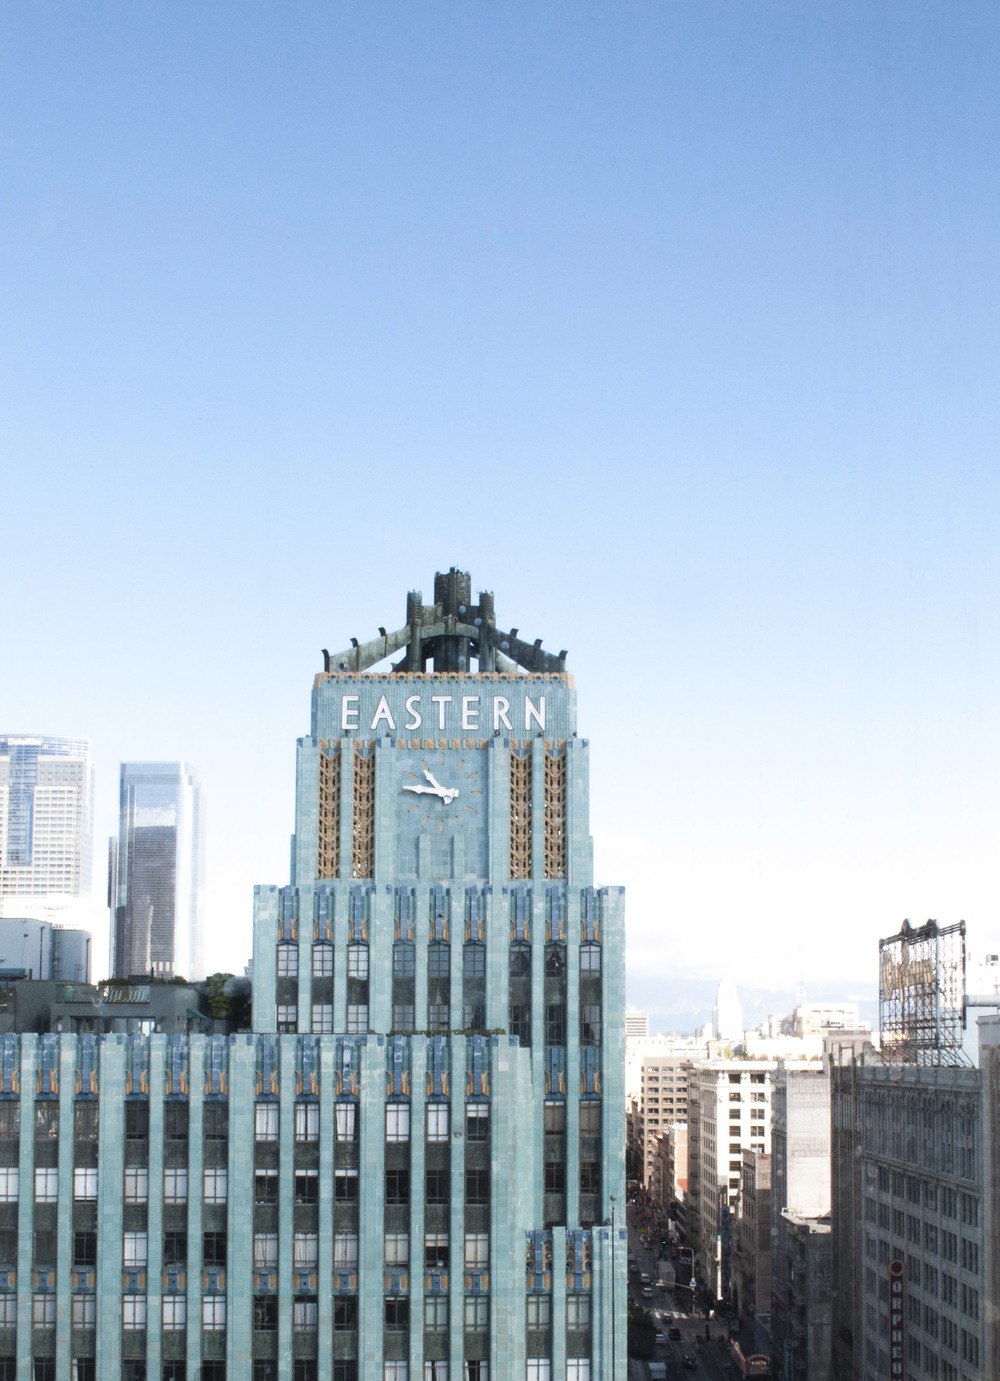 View of the old Eastern Building from the roof of the Ace Hotel